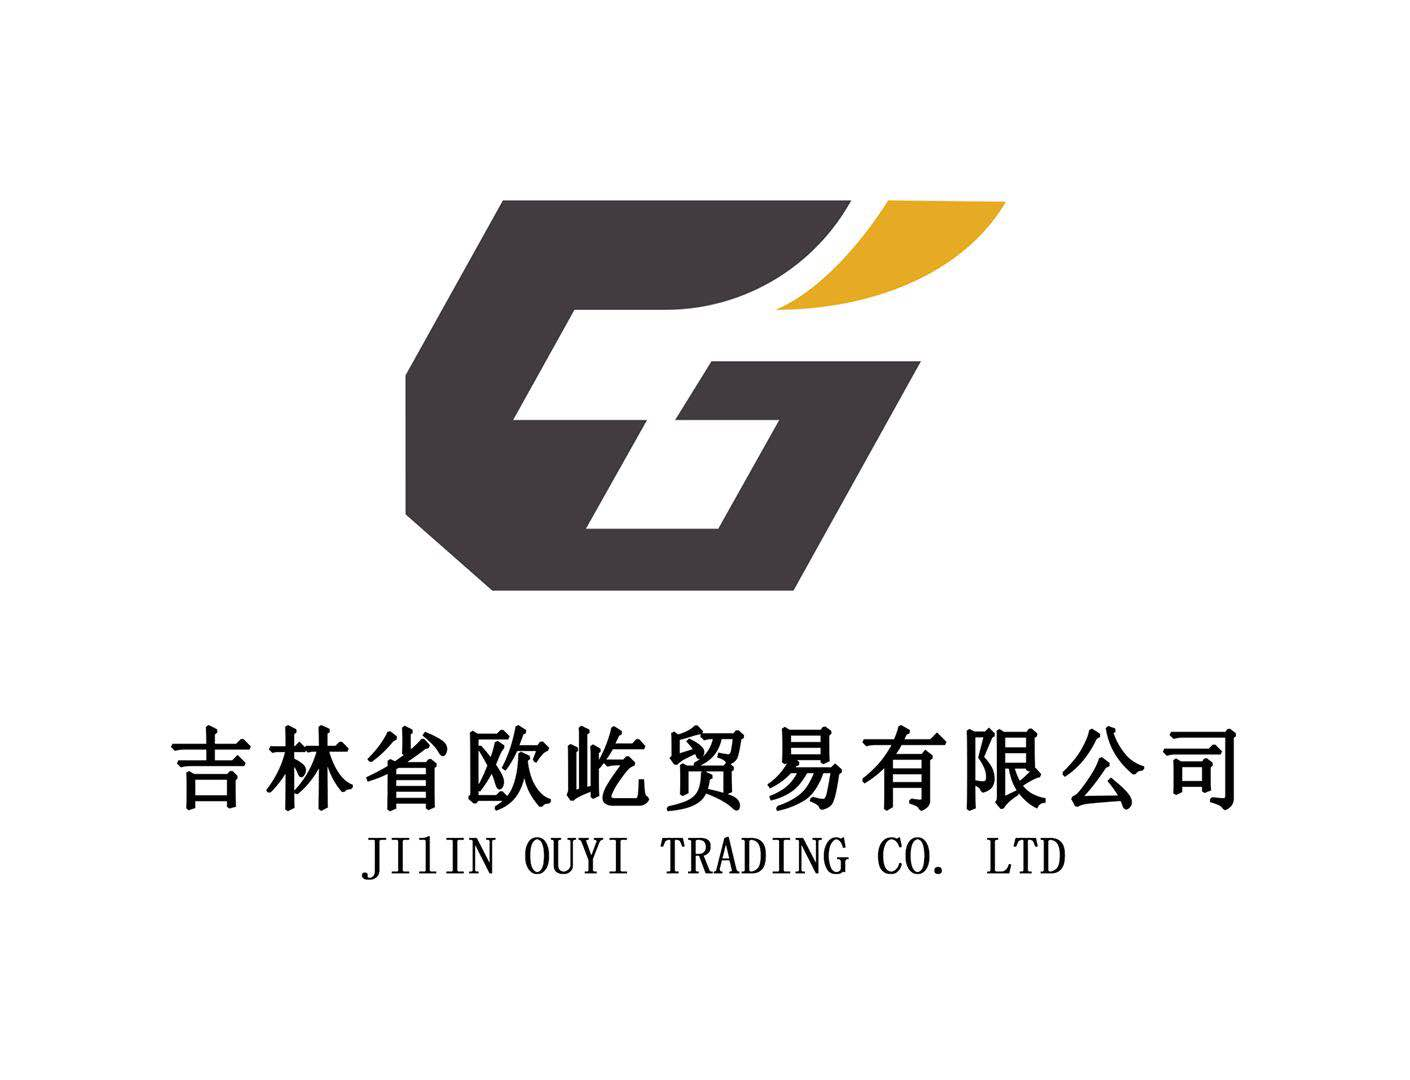 JILIN OUYI TRADING CO.,LTD.